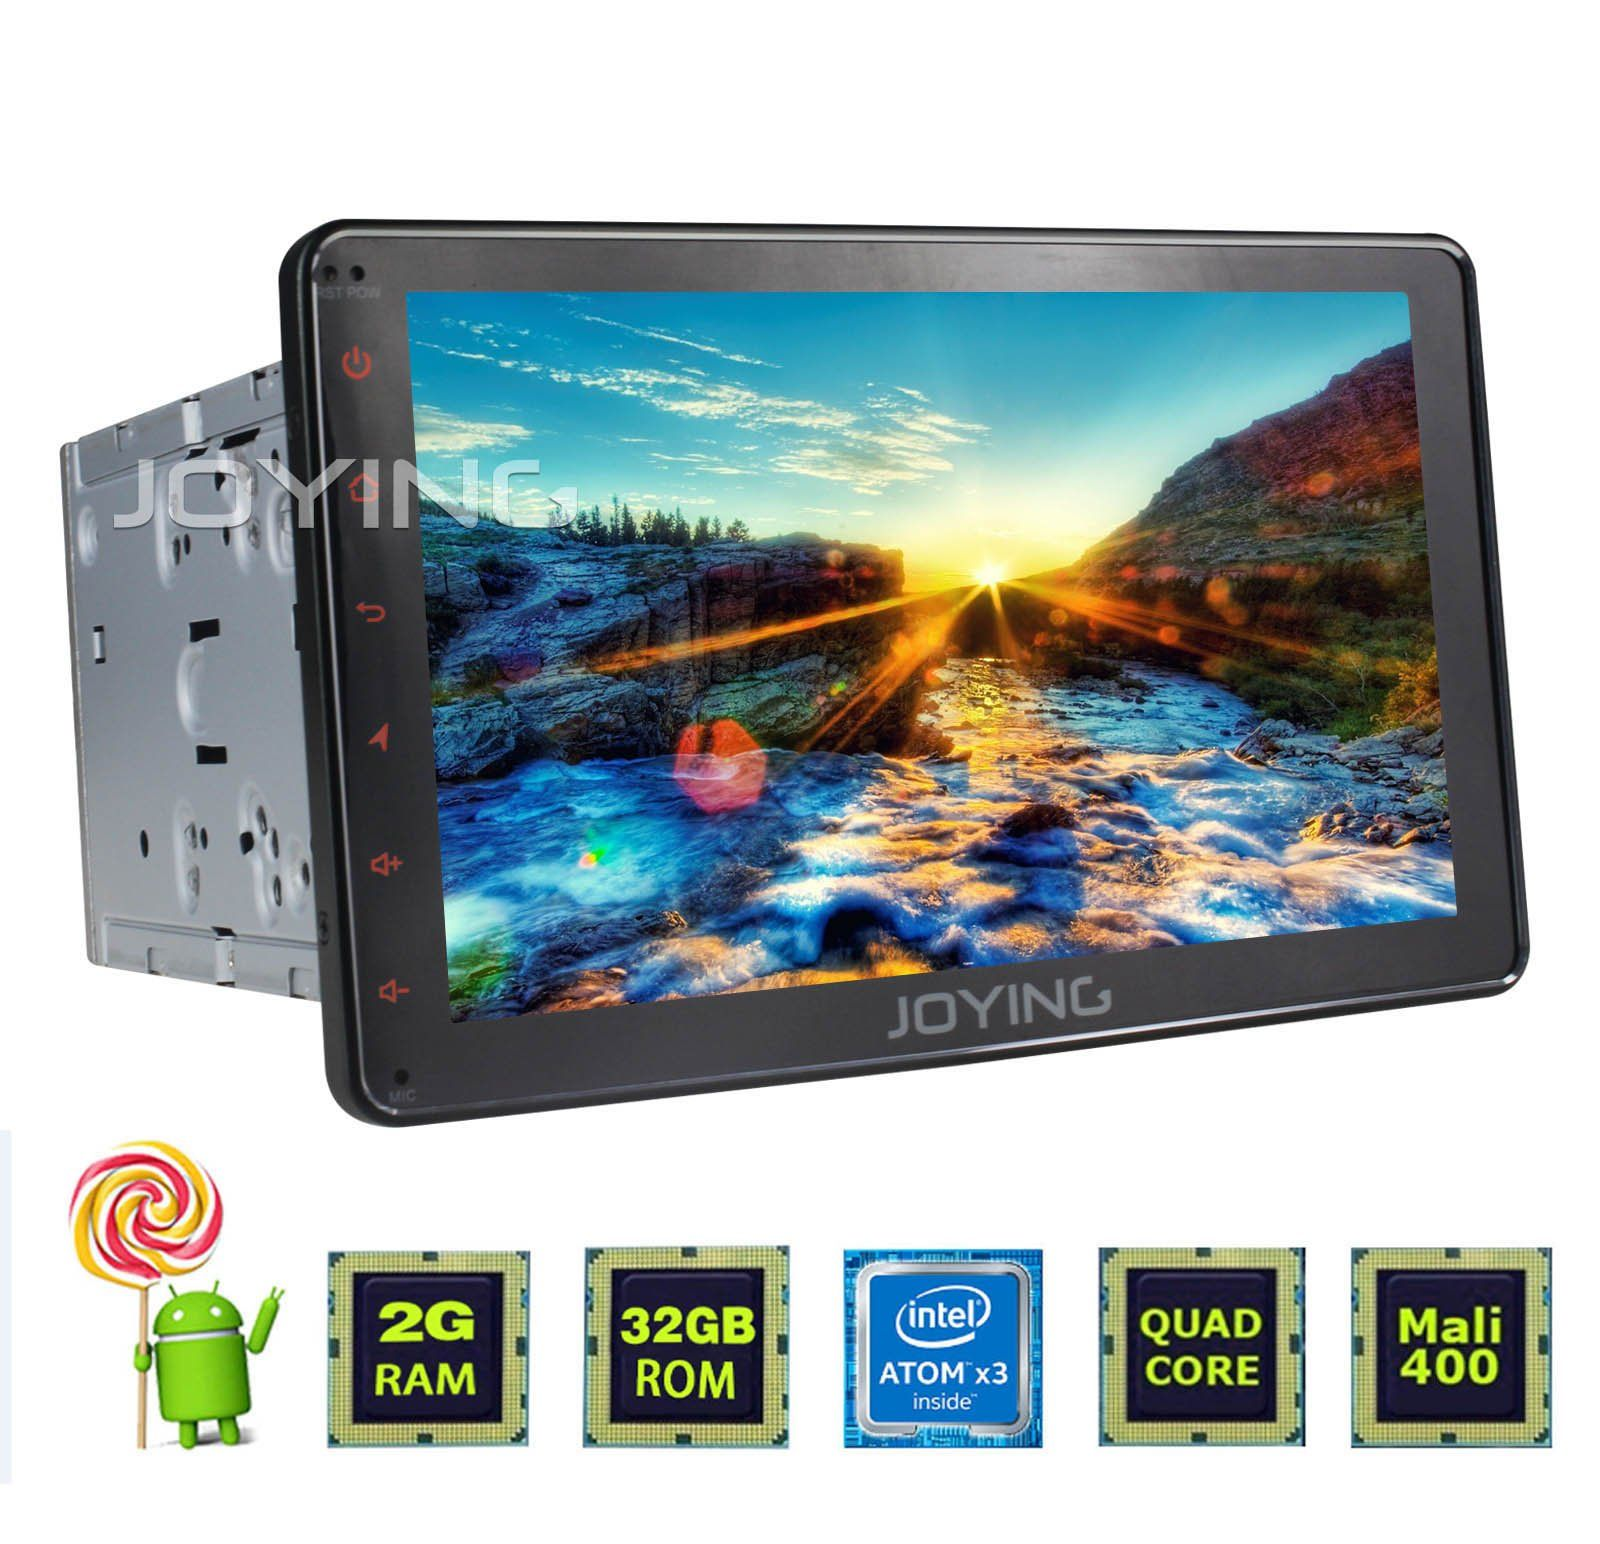 hight resolution of joying 8 inch android head unit double din touch screen car stereo 2gb ram intel quad core android 5 1 in dash navigation auto gps car radio audio receiver